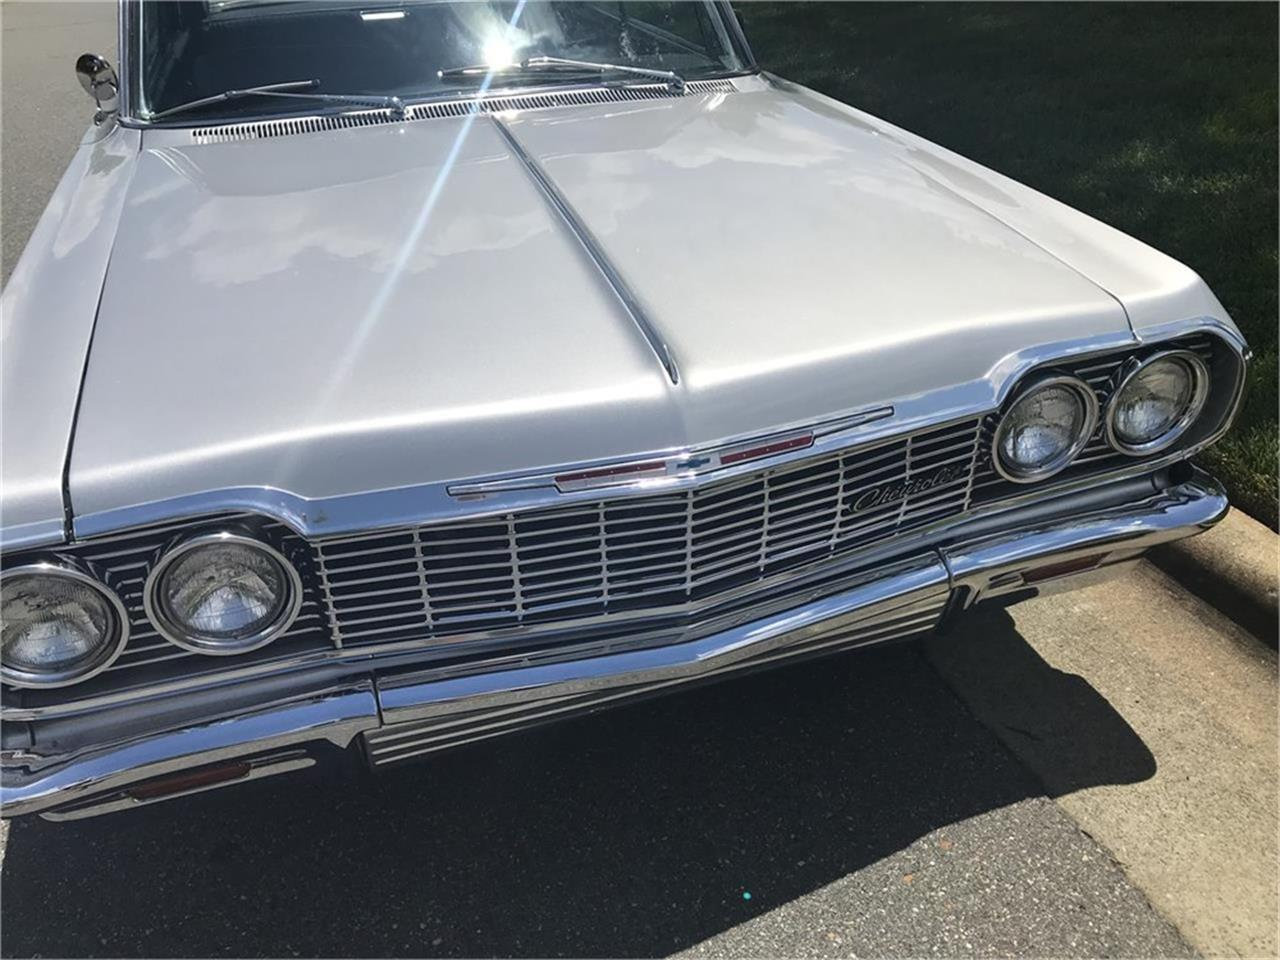 1964 Chevrolet Impala (CC-1391372) for sale in Clemmons, North Carolina